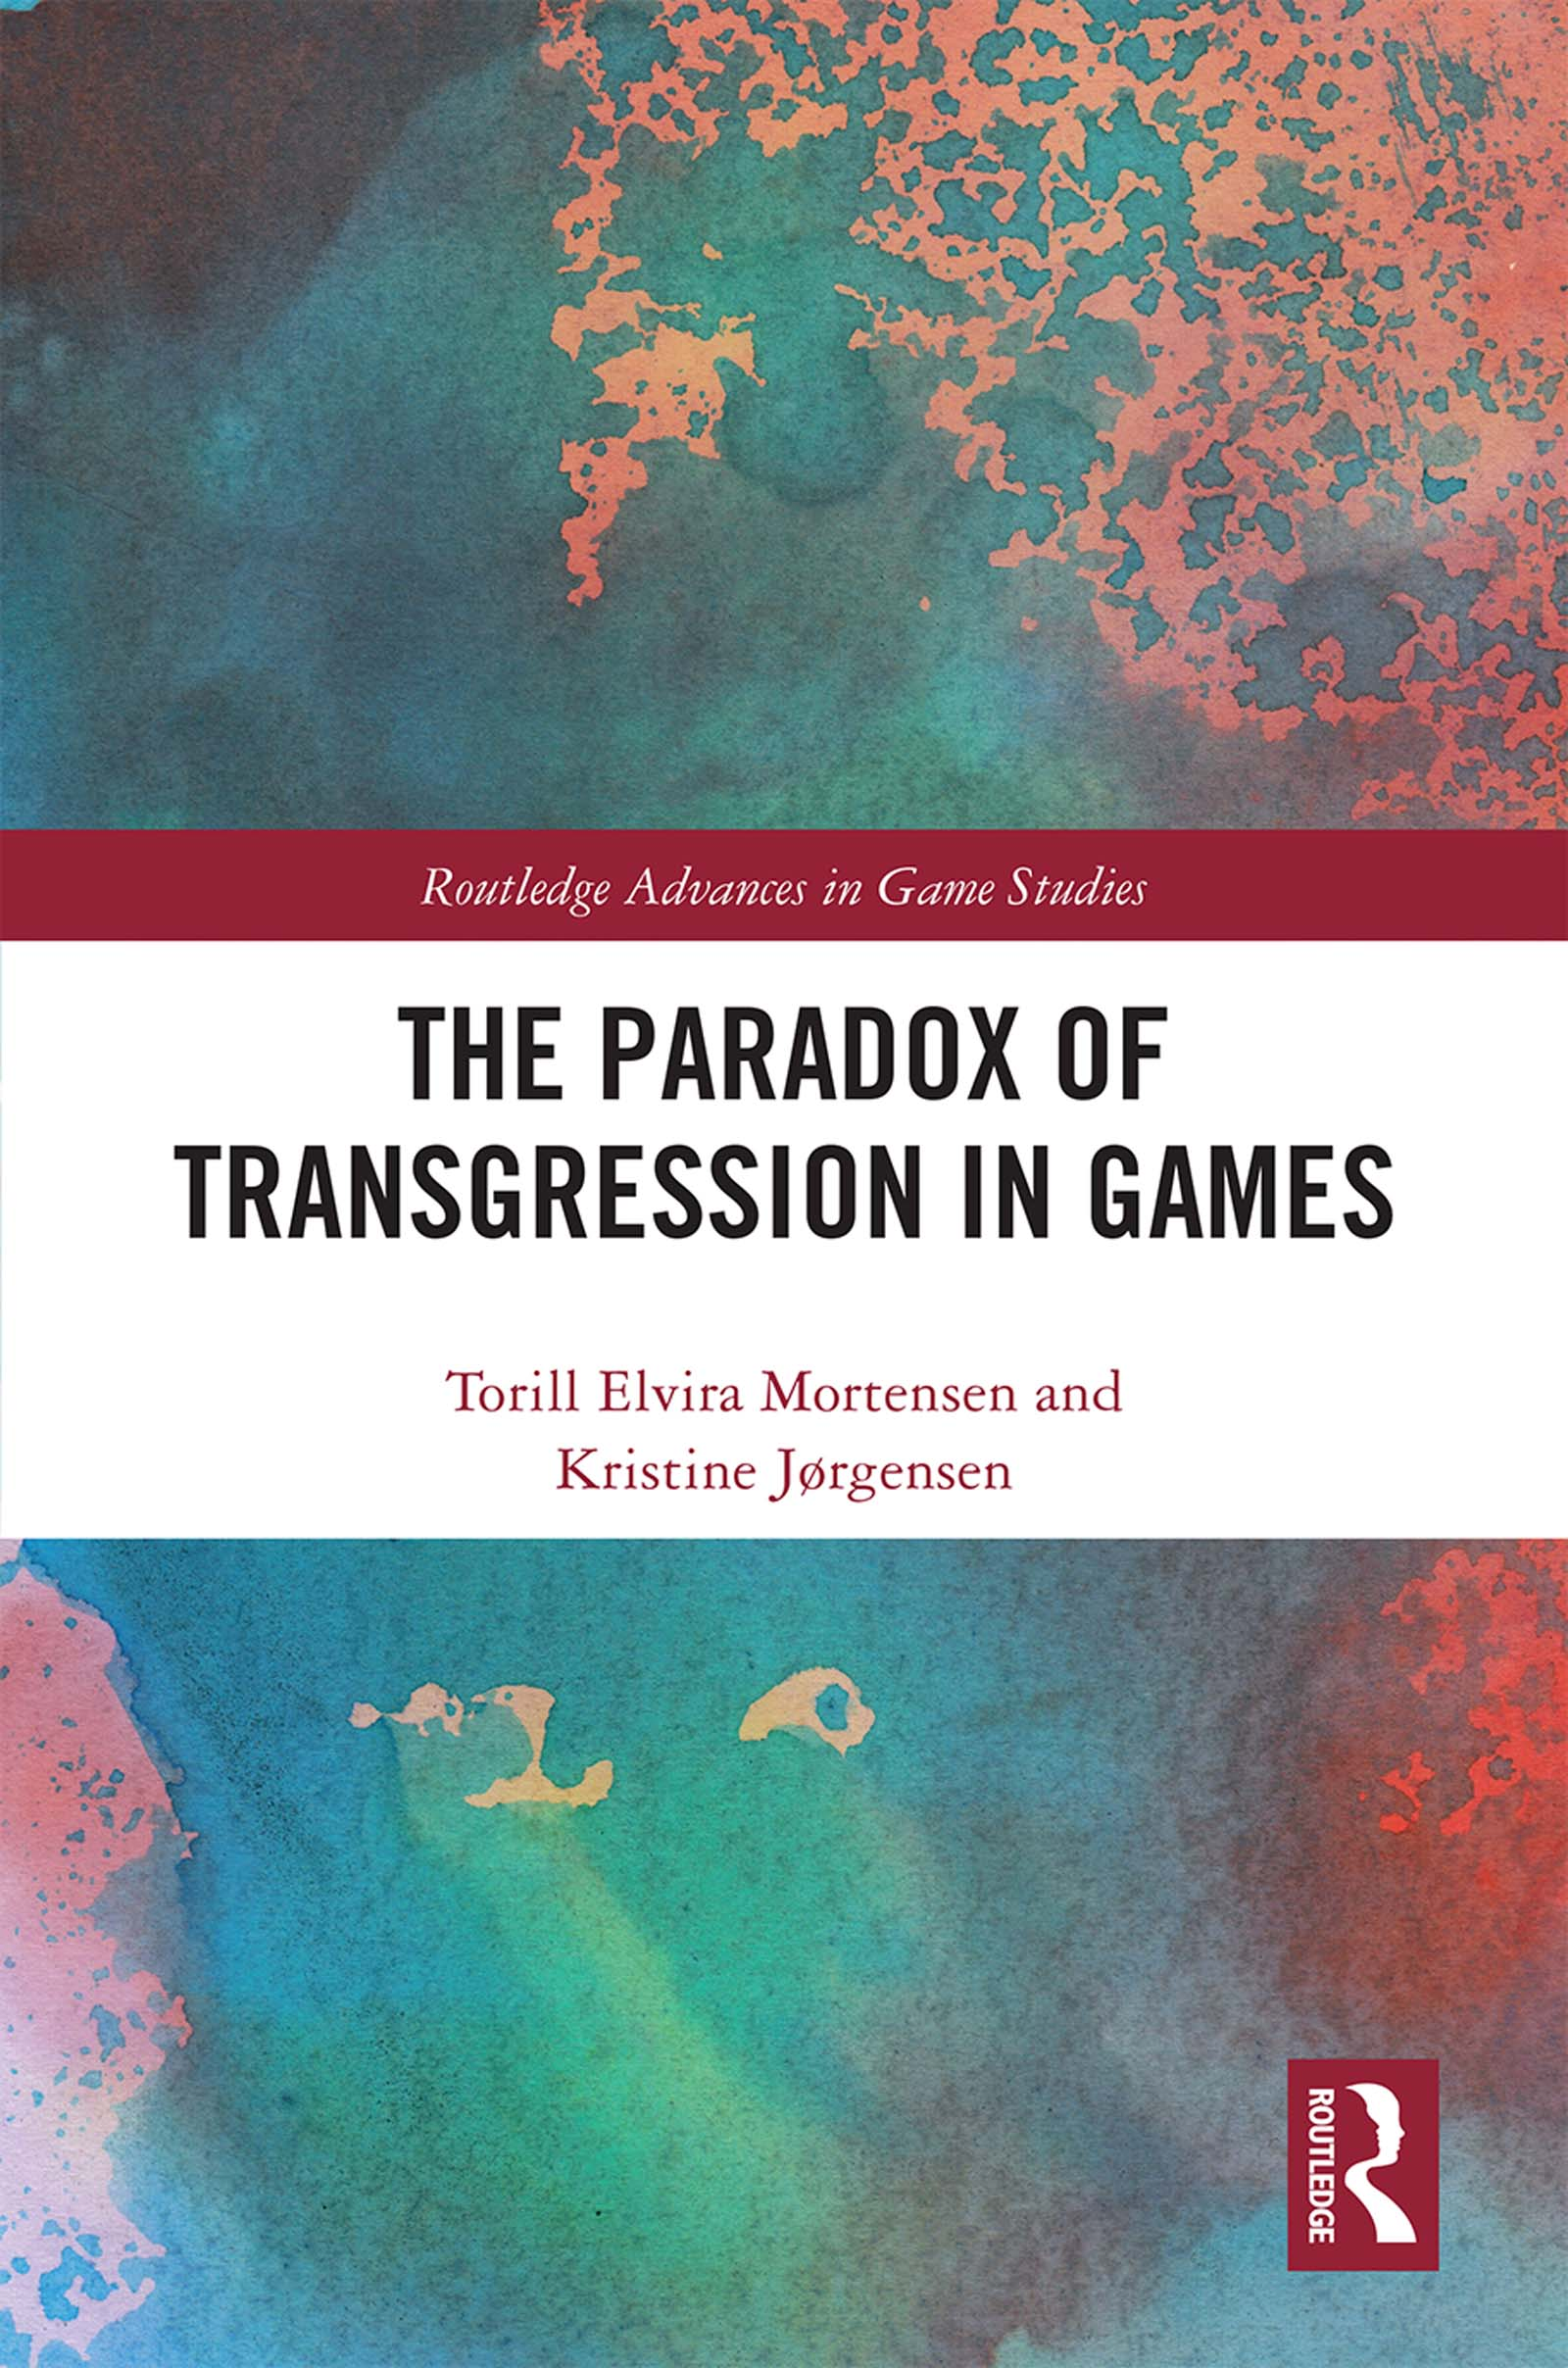 The Paradox of Transgression in Games book cover